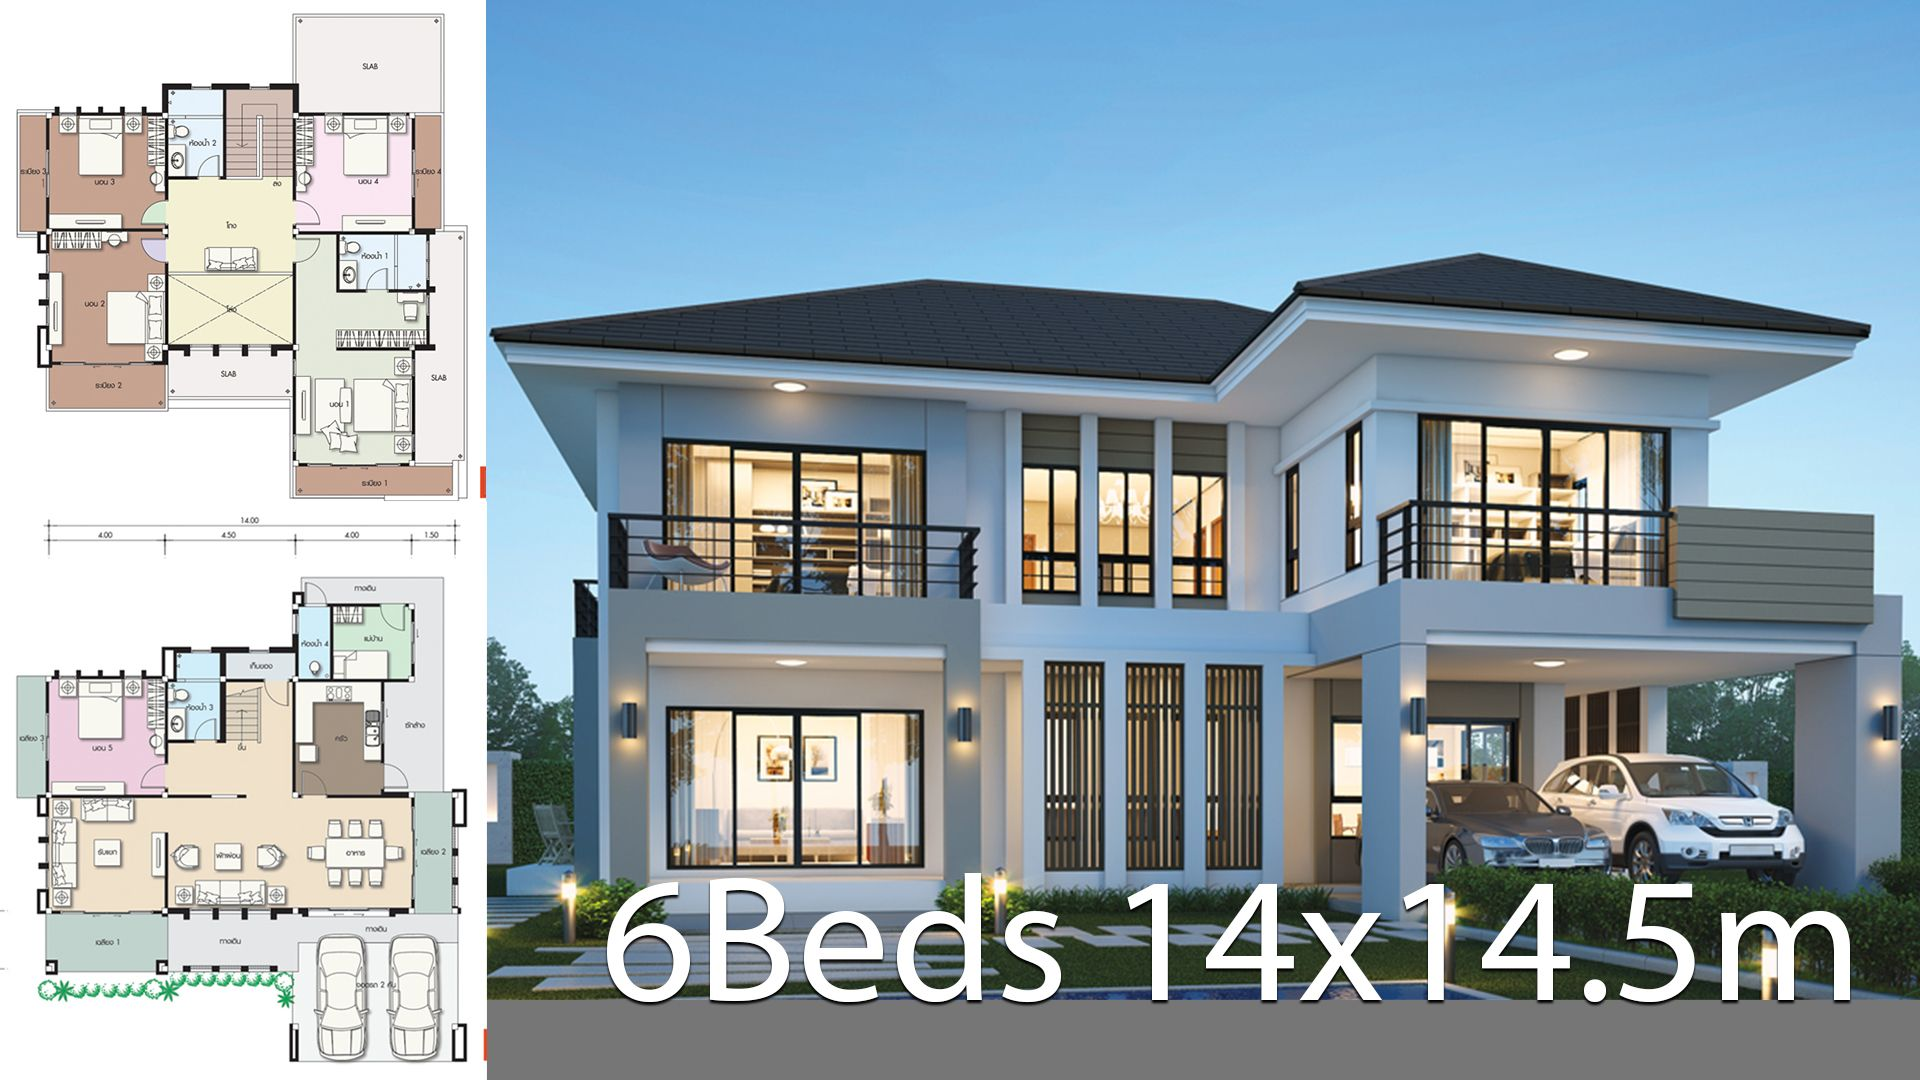 House Design Plan 14x14 5m With 6 Bedrooms House Plans 3d In 2020 Bungalow House Design House Layout Plans Home Design Plans